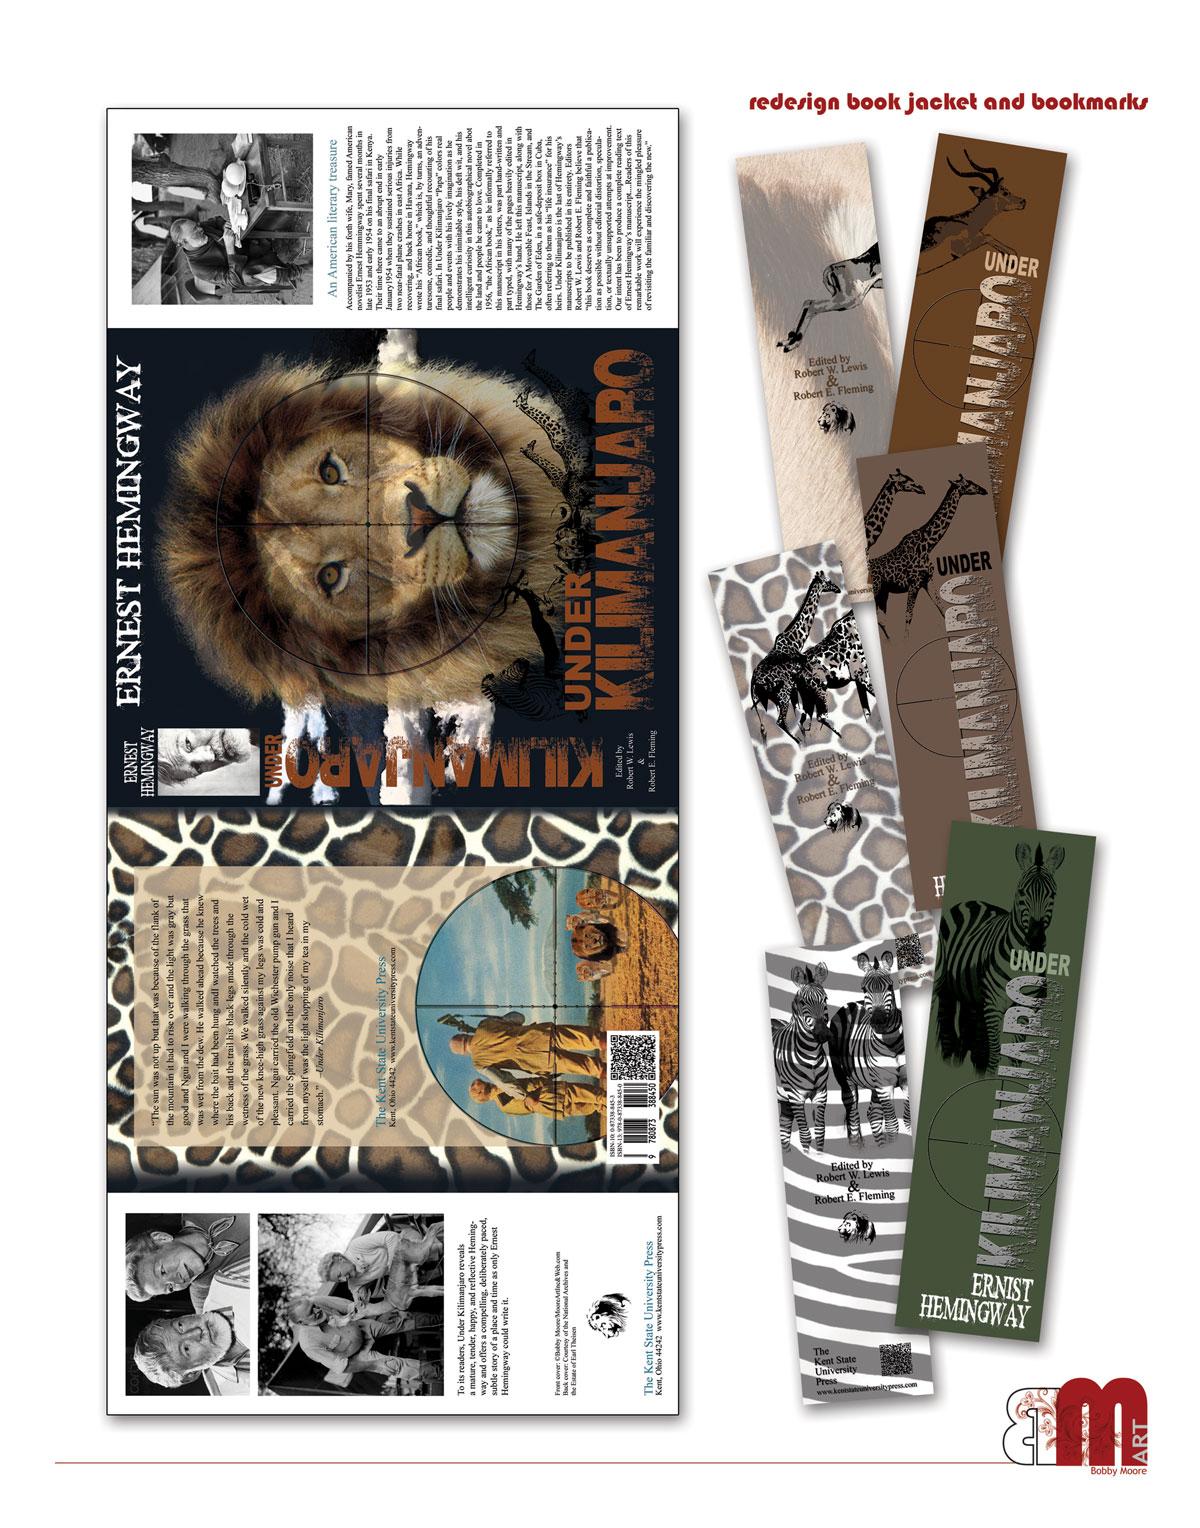 Sample book jacket re-do with bookmarks